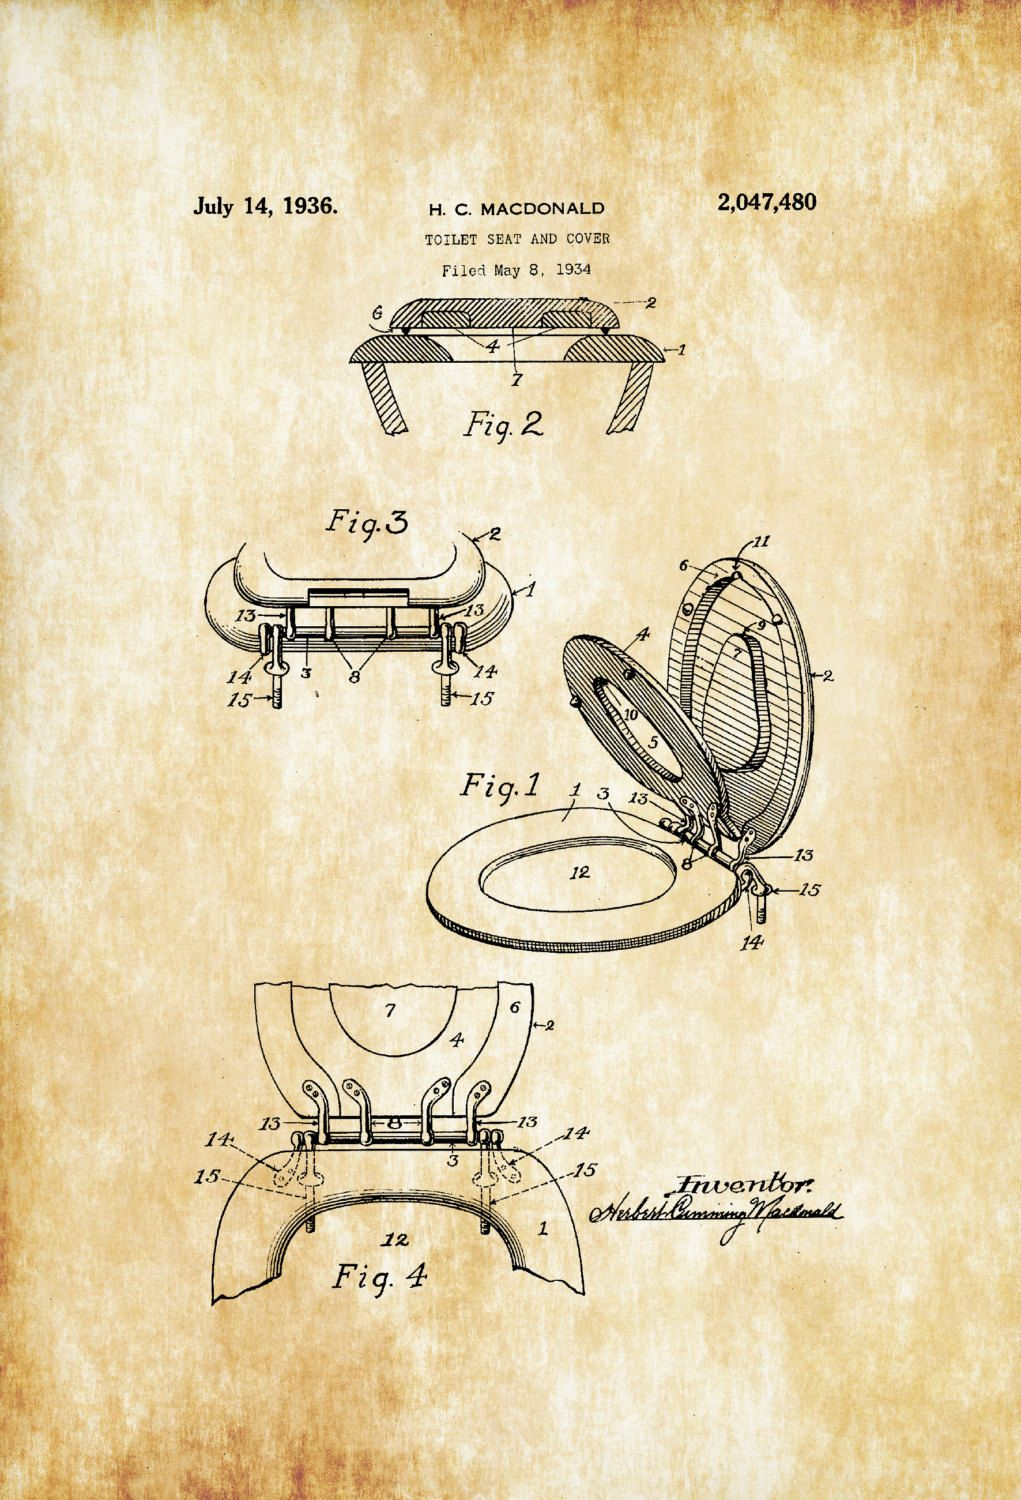 Toilet Seat Patent - Patent Print, Wall Decor, Bathroom Decor ...